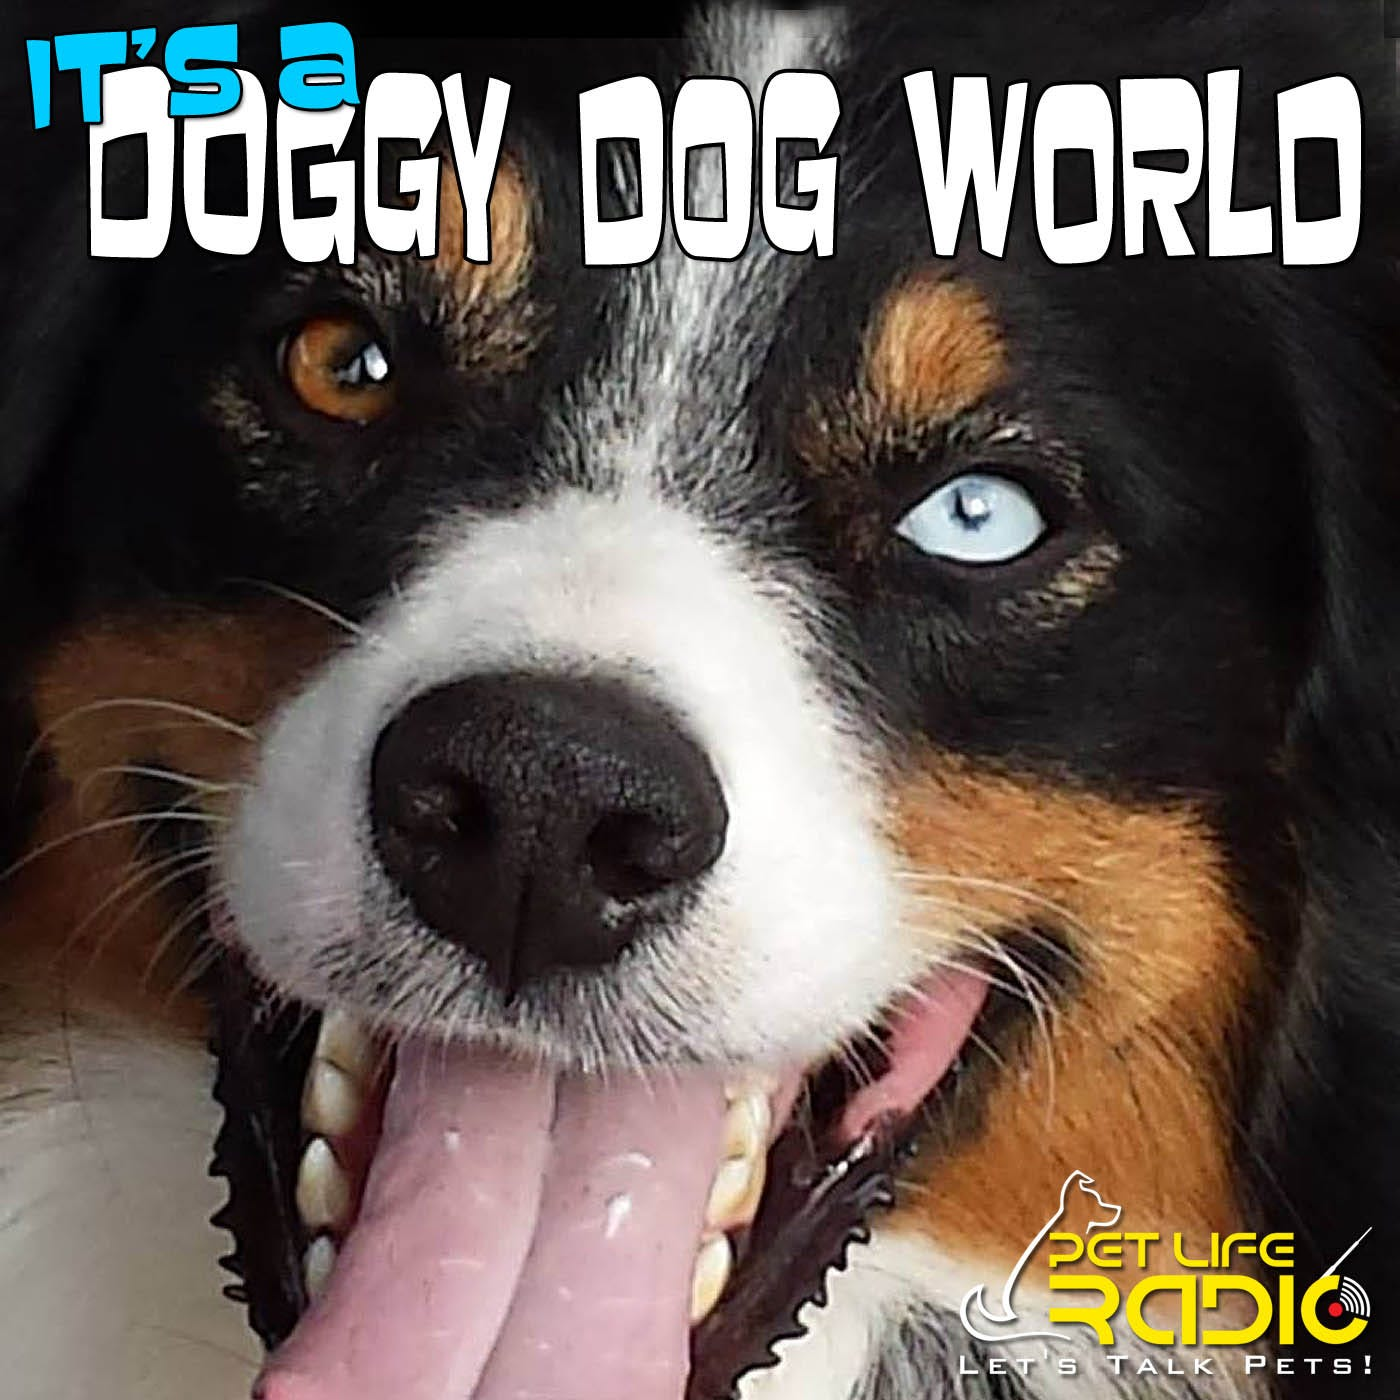 It's A Doggy Dog World - Dog Podcast about dogs as pets & caring for your pet dog, - Pets & Animals on Pet Life Radio (PetLifeRadio.com)